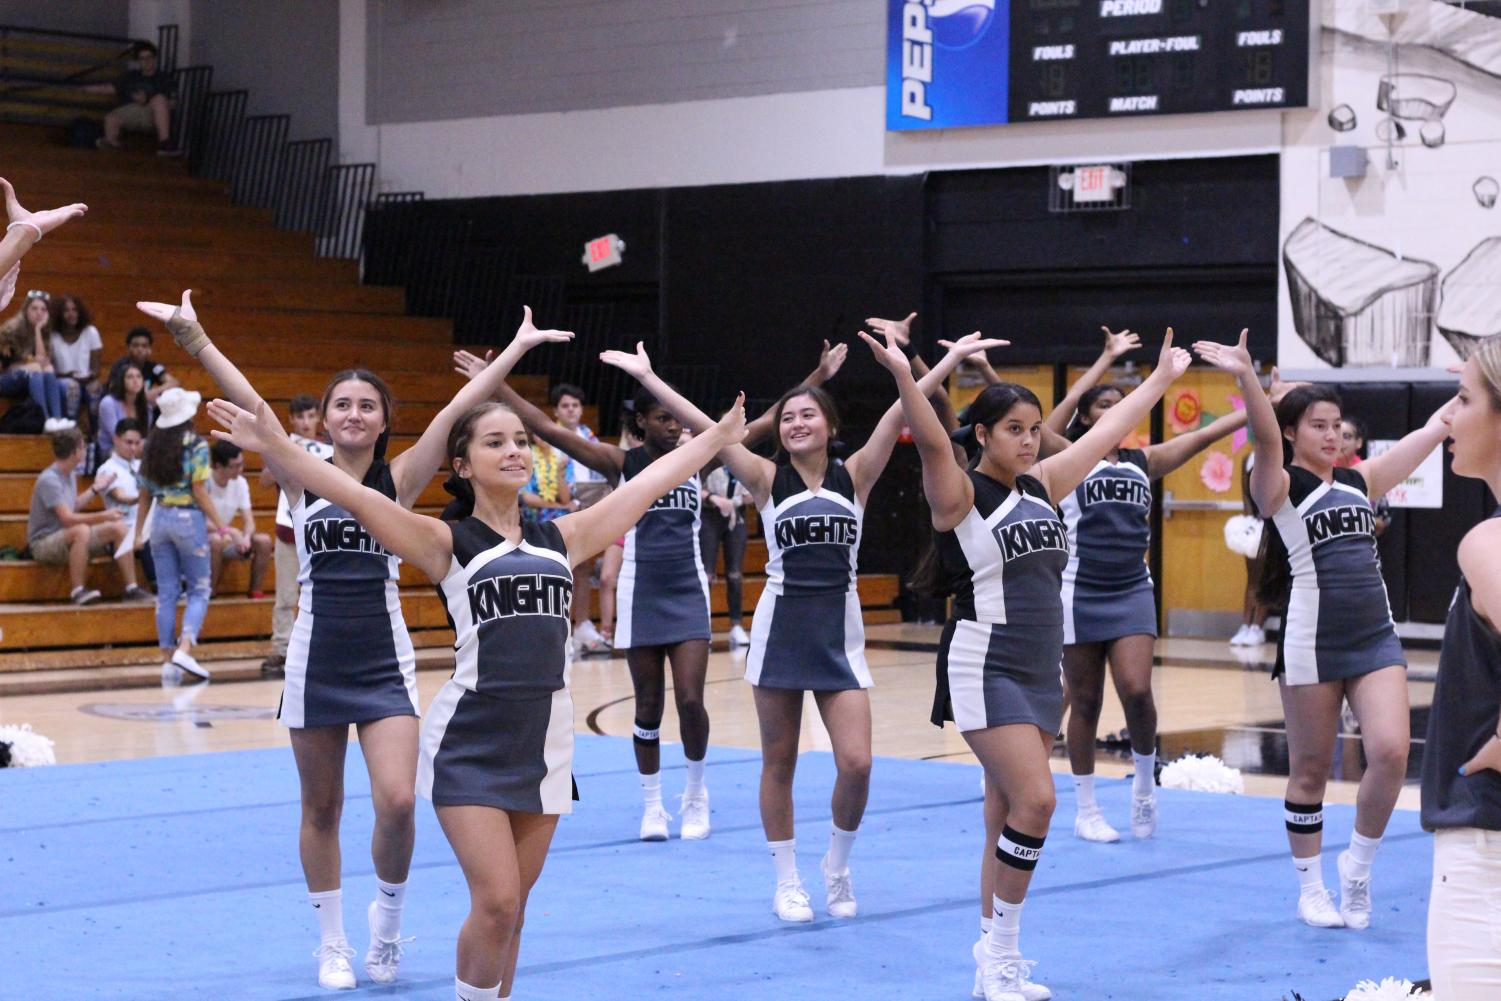 Performing+their+game+day+routine%2C+the+Robinson+cheerleaders+start+off+the+first+pep+rally+of+the+year.